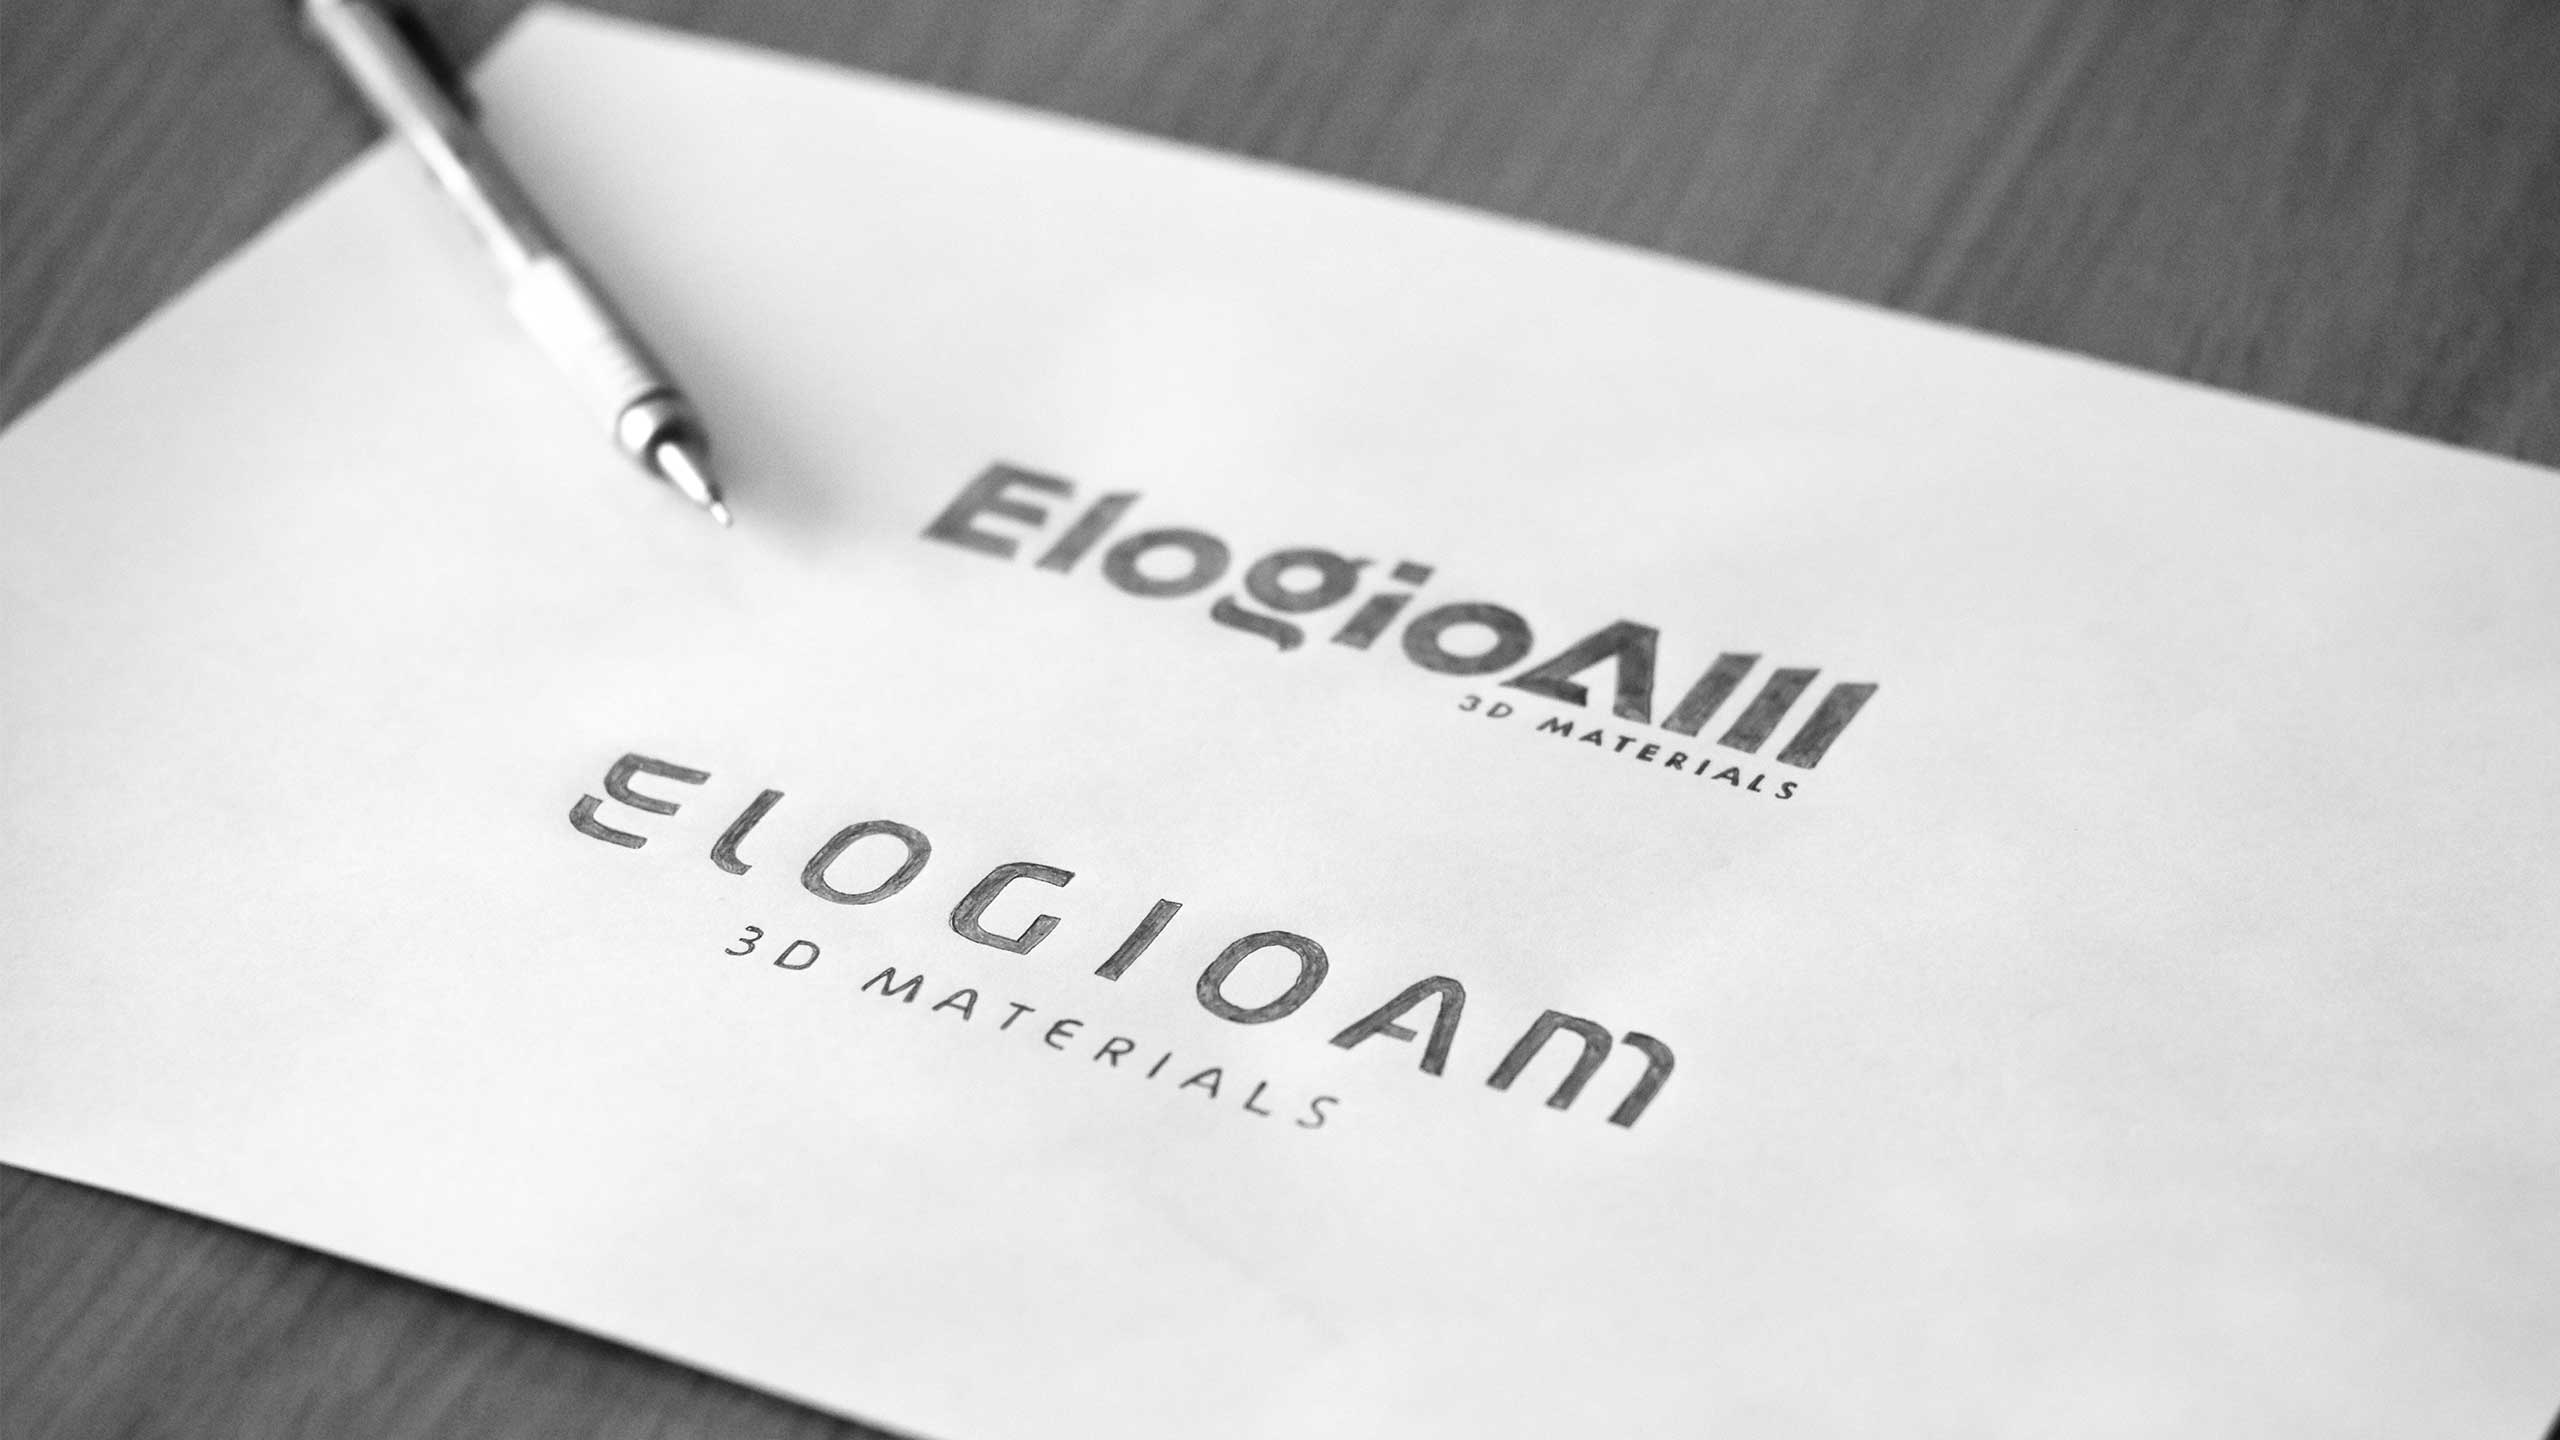 Sketches for ElogioAM visual identity.